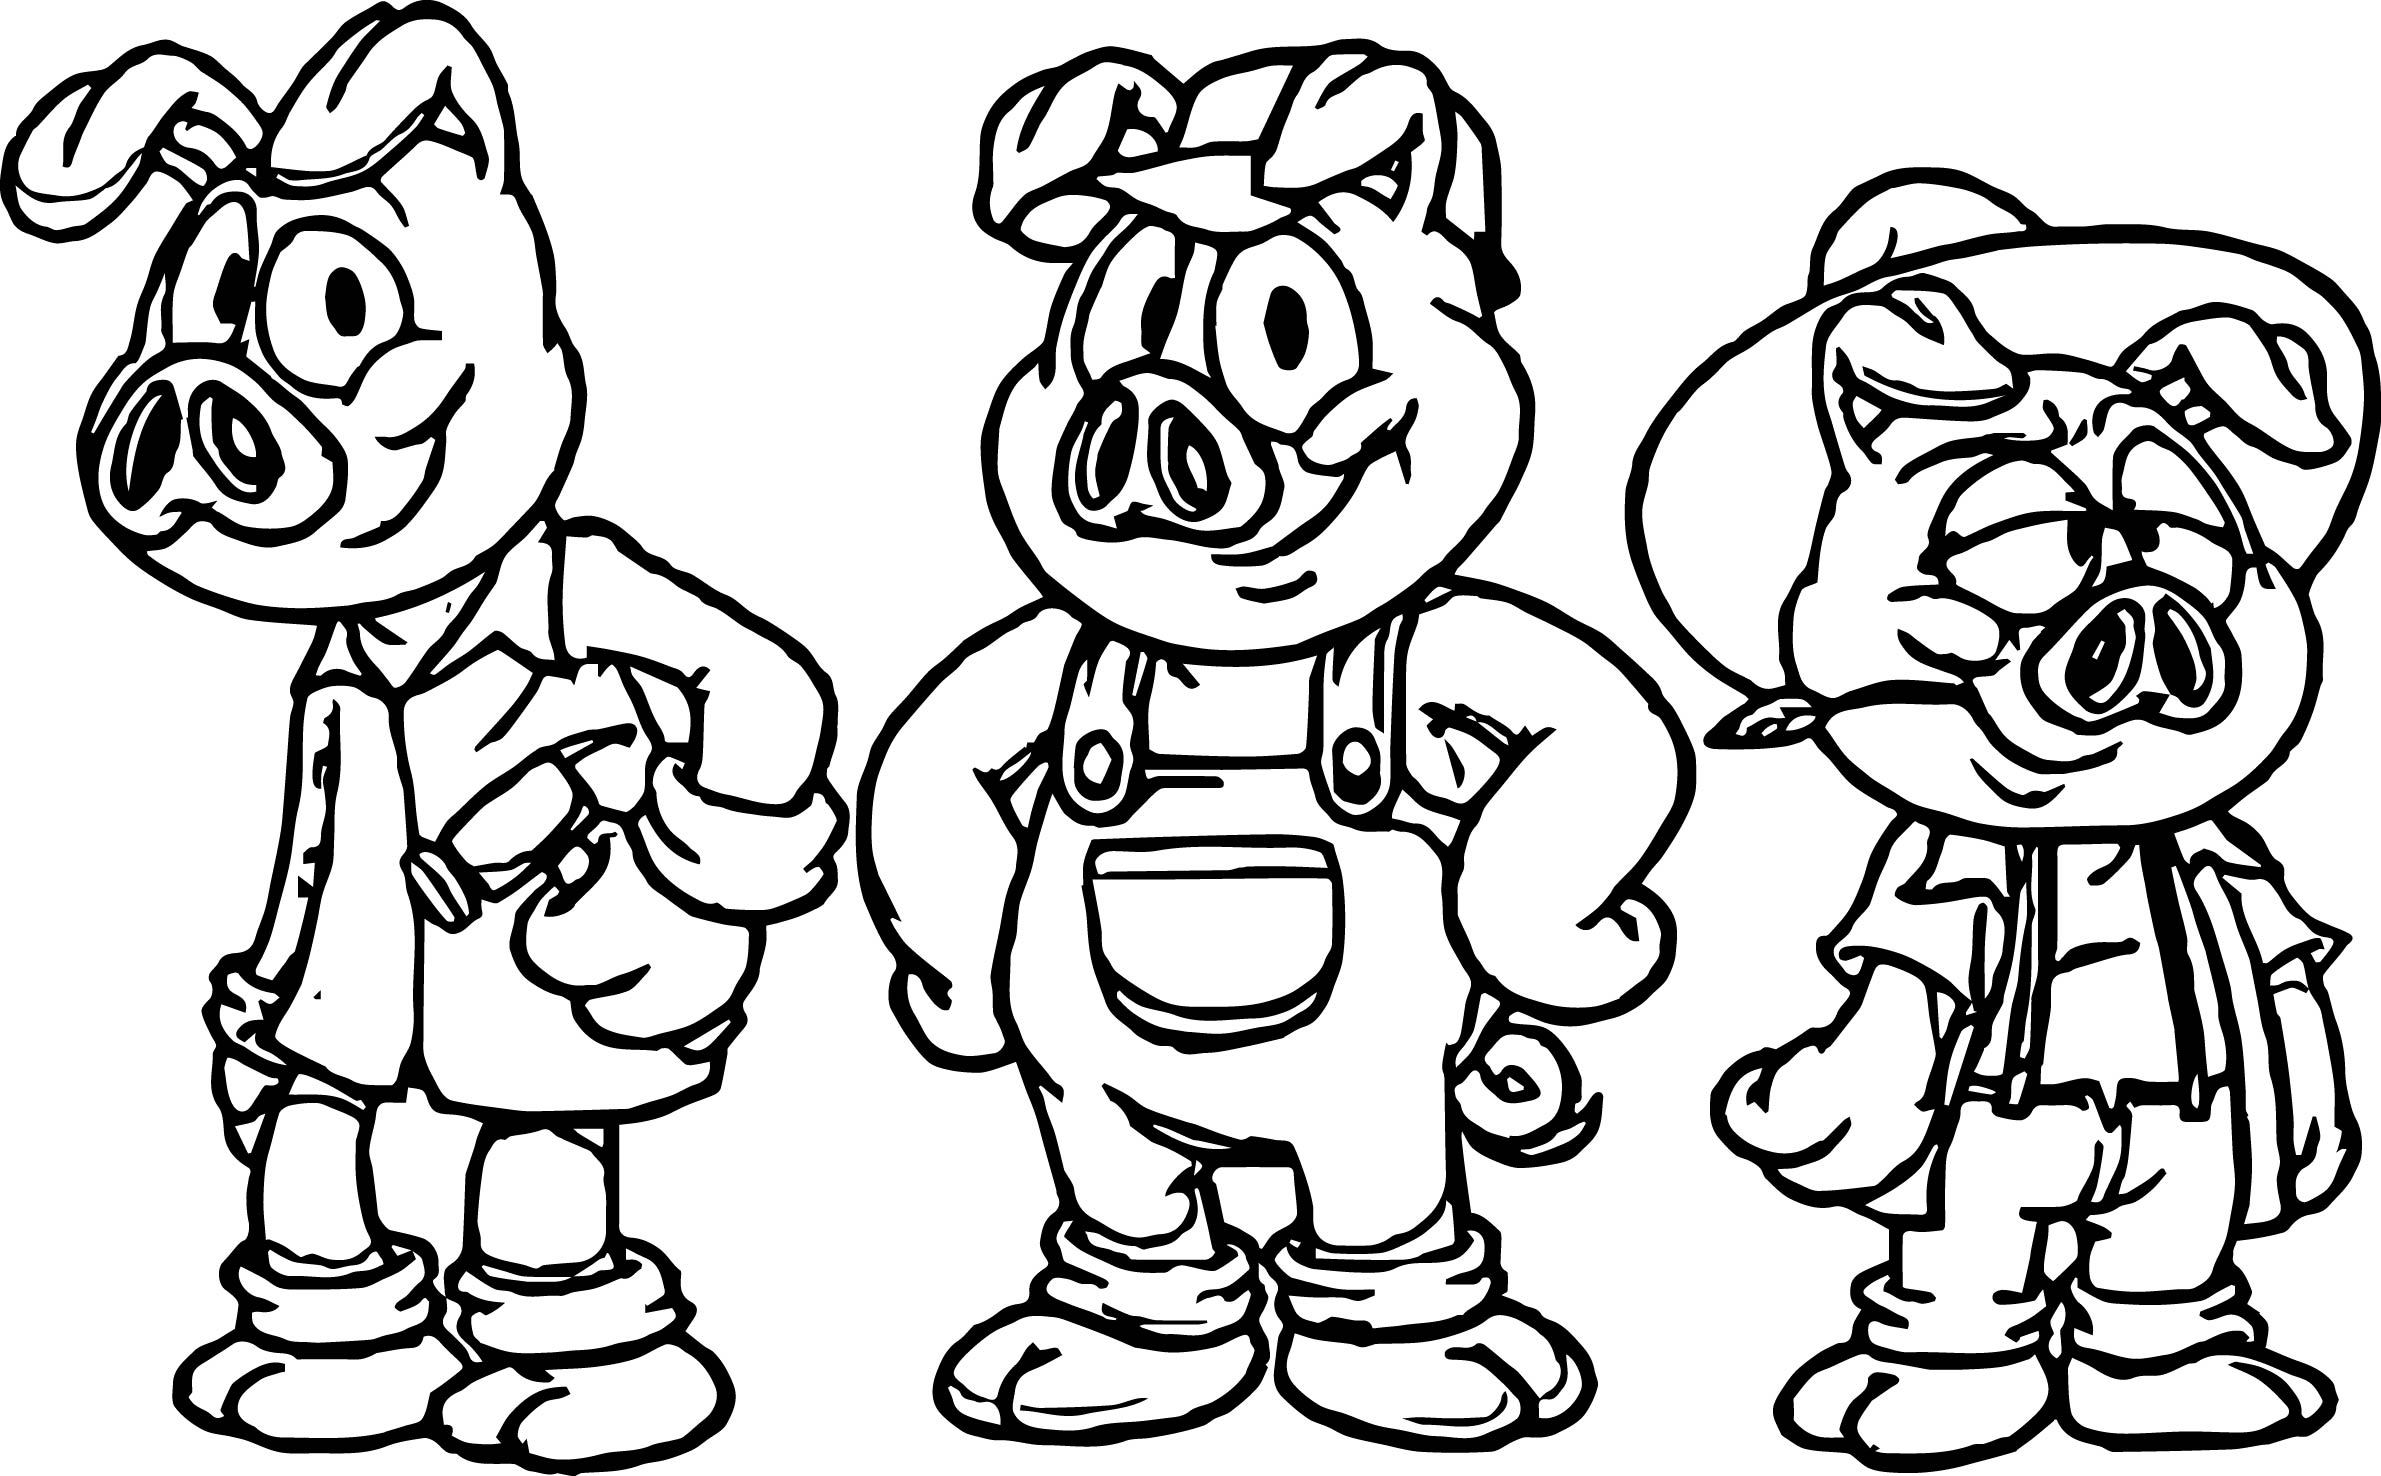 Three Little Pigs Drawing